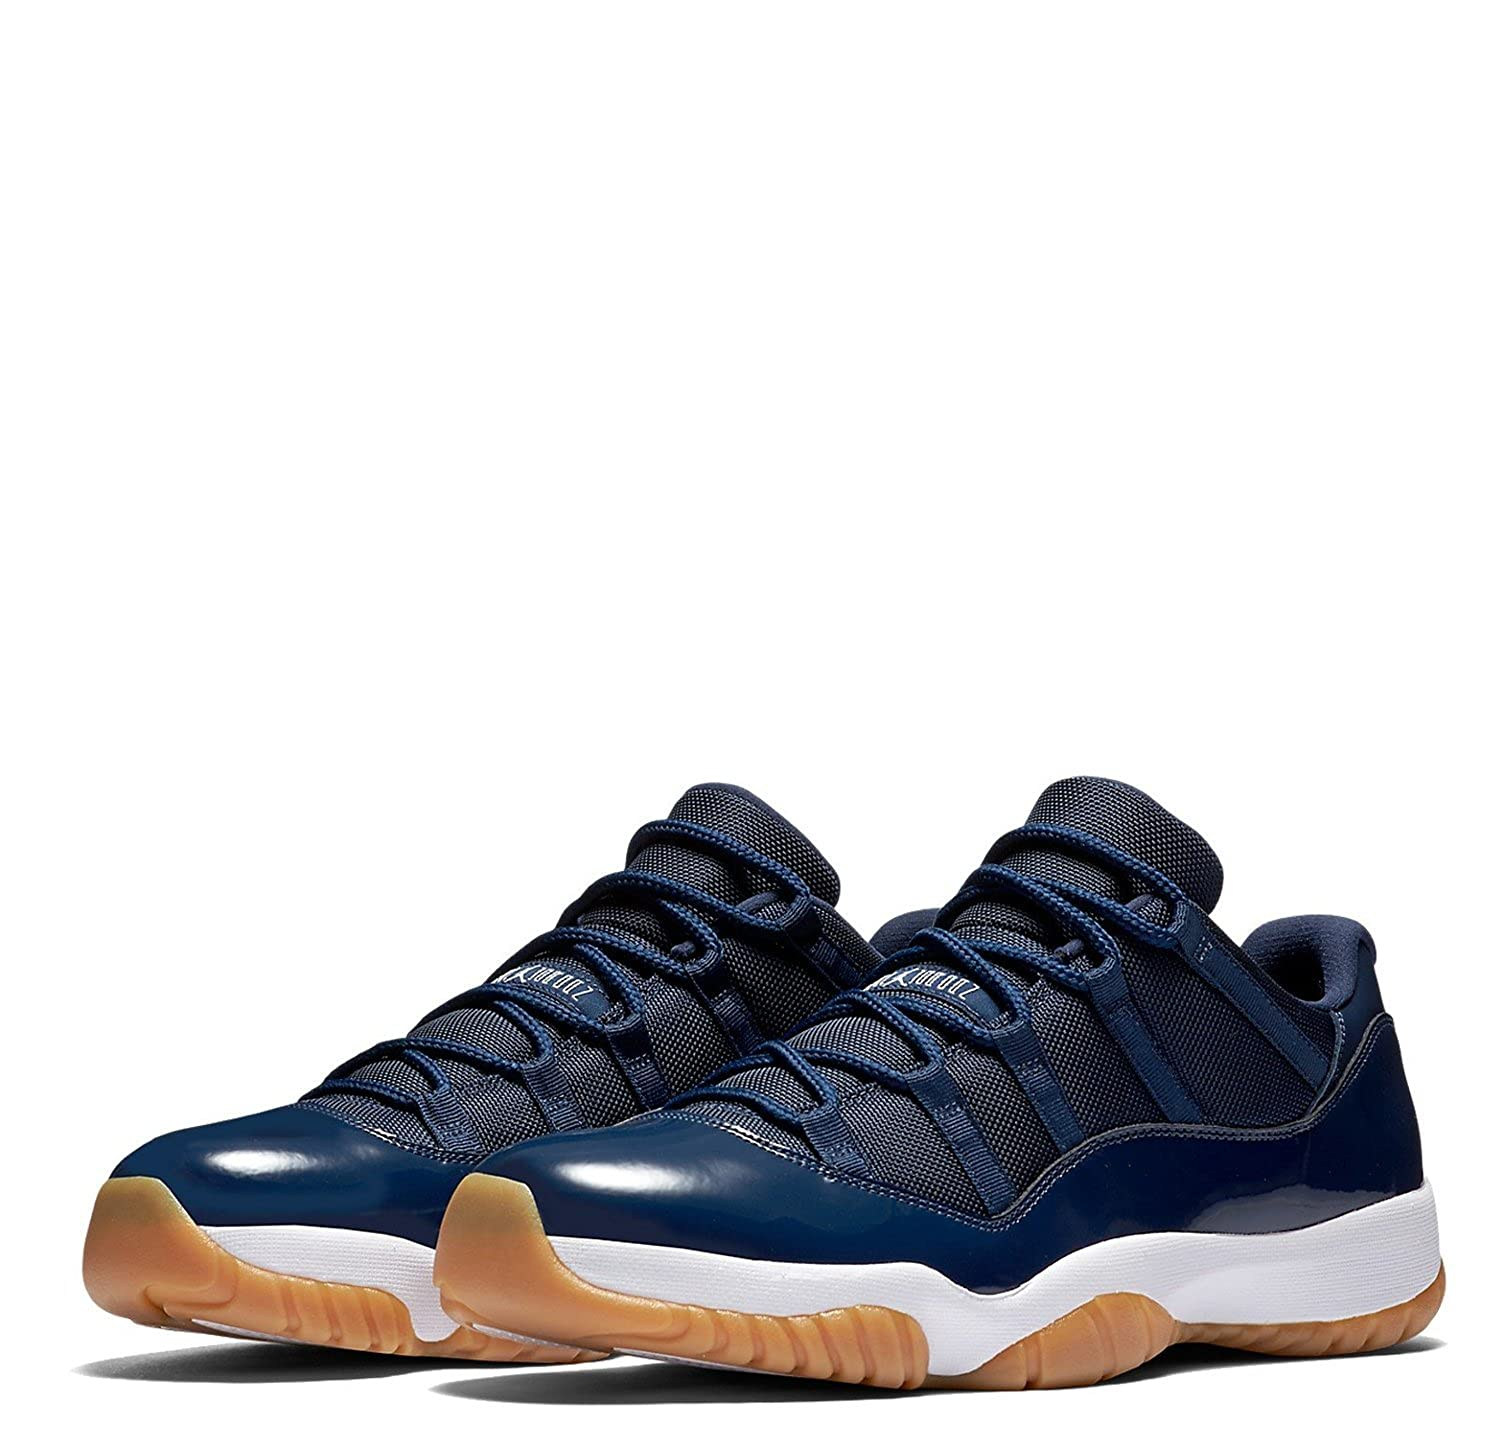 Air Jordan 11 Retro Low Mens Navy/Blue Patent Leather